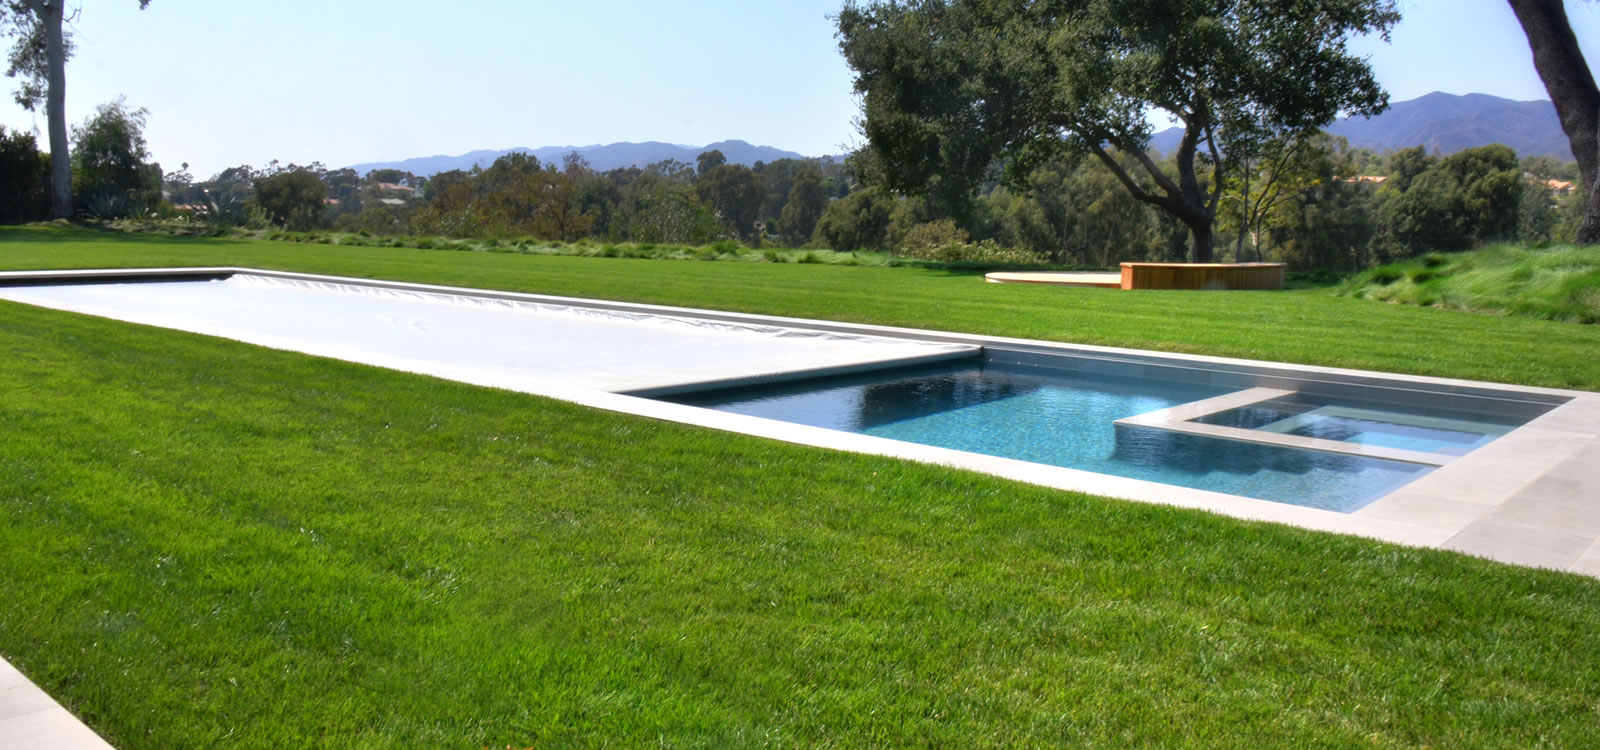 Santa monica pool spa design w pool cover by john for Design pond cover